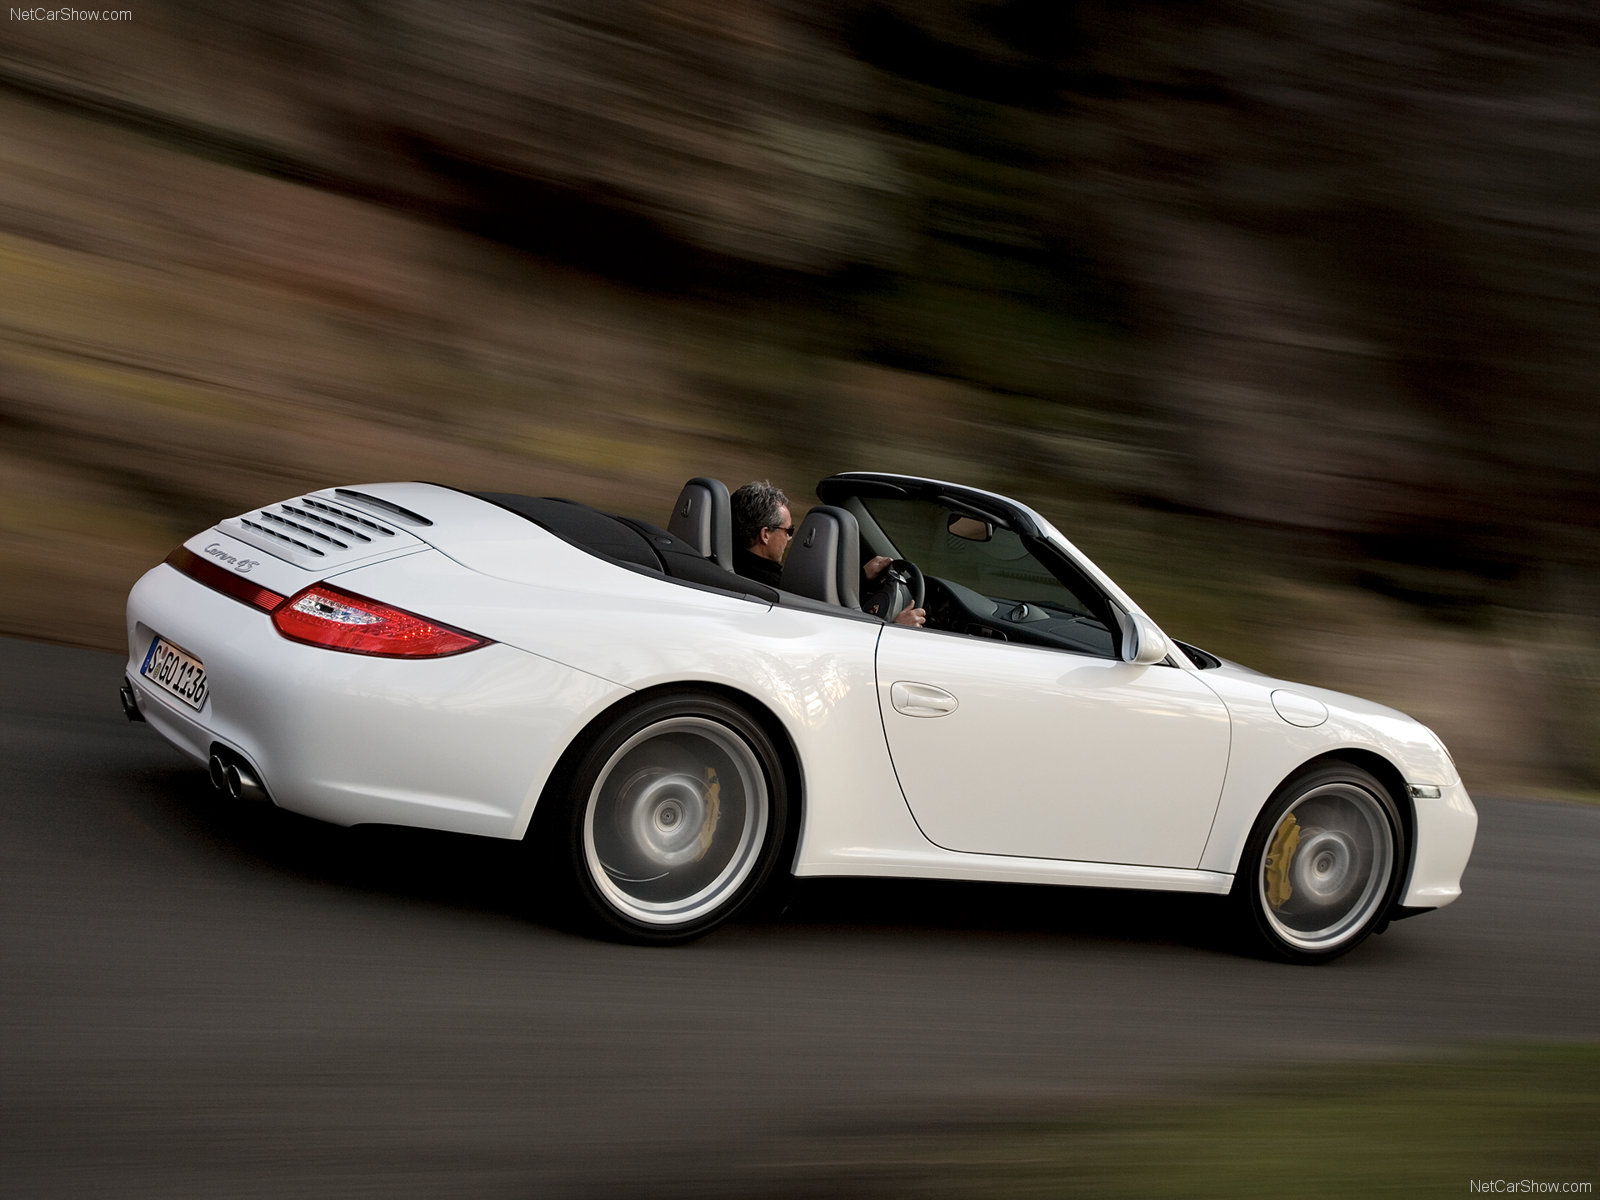 2009 White Porsche 911 Carrera 4 Cabriolet Wallpapers